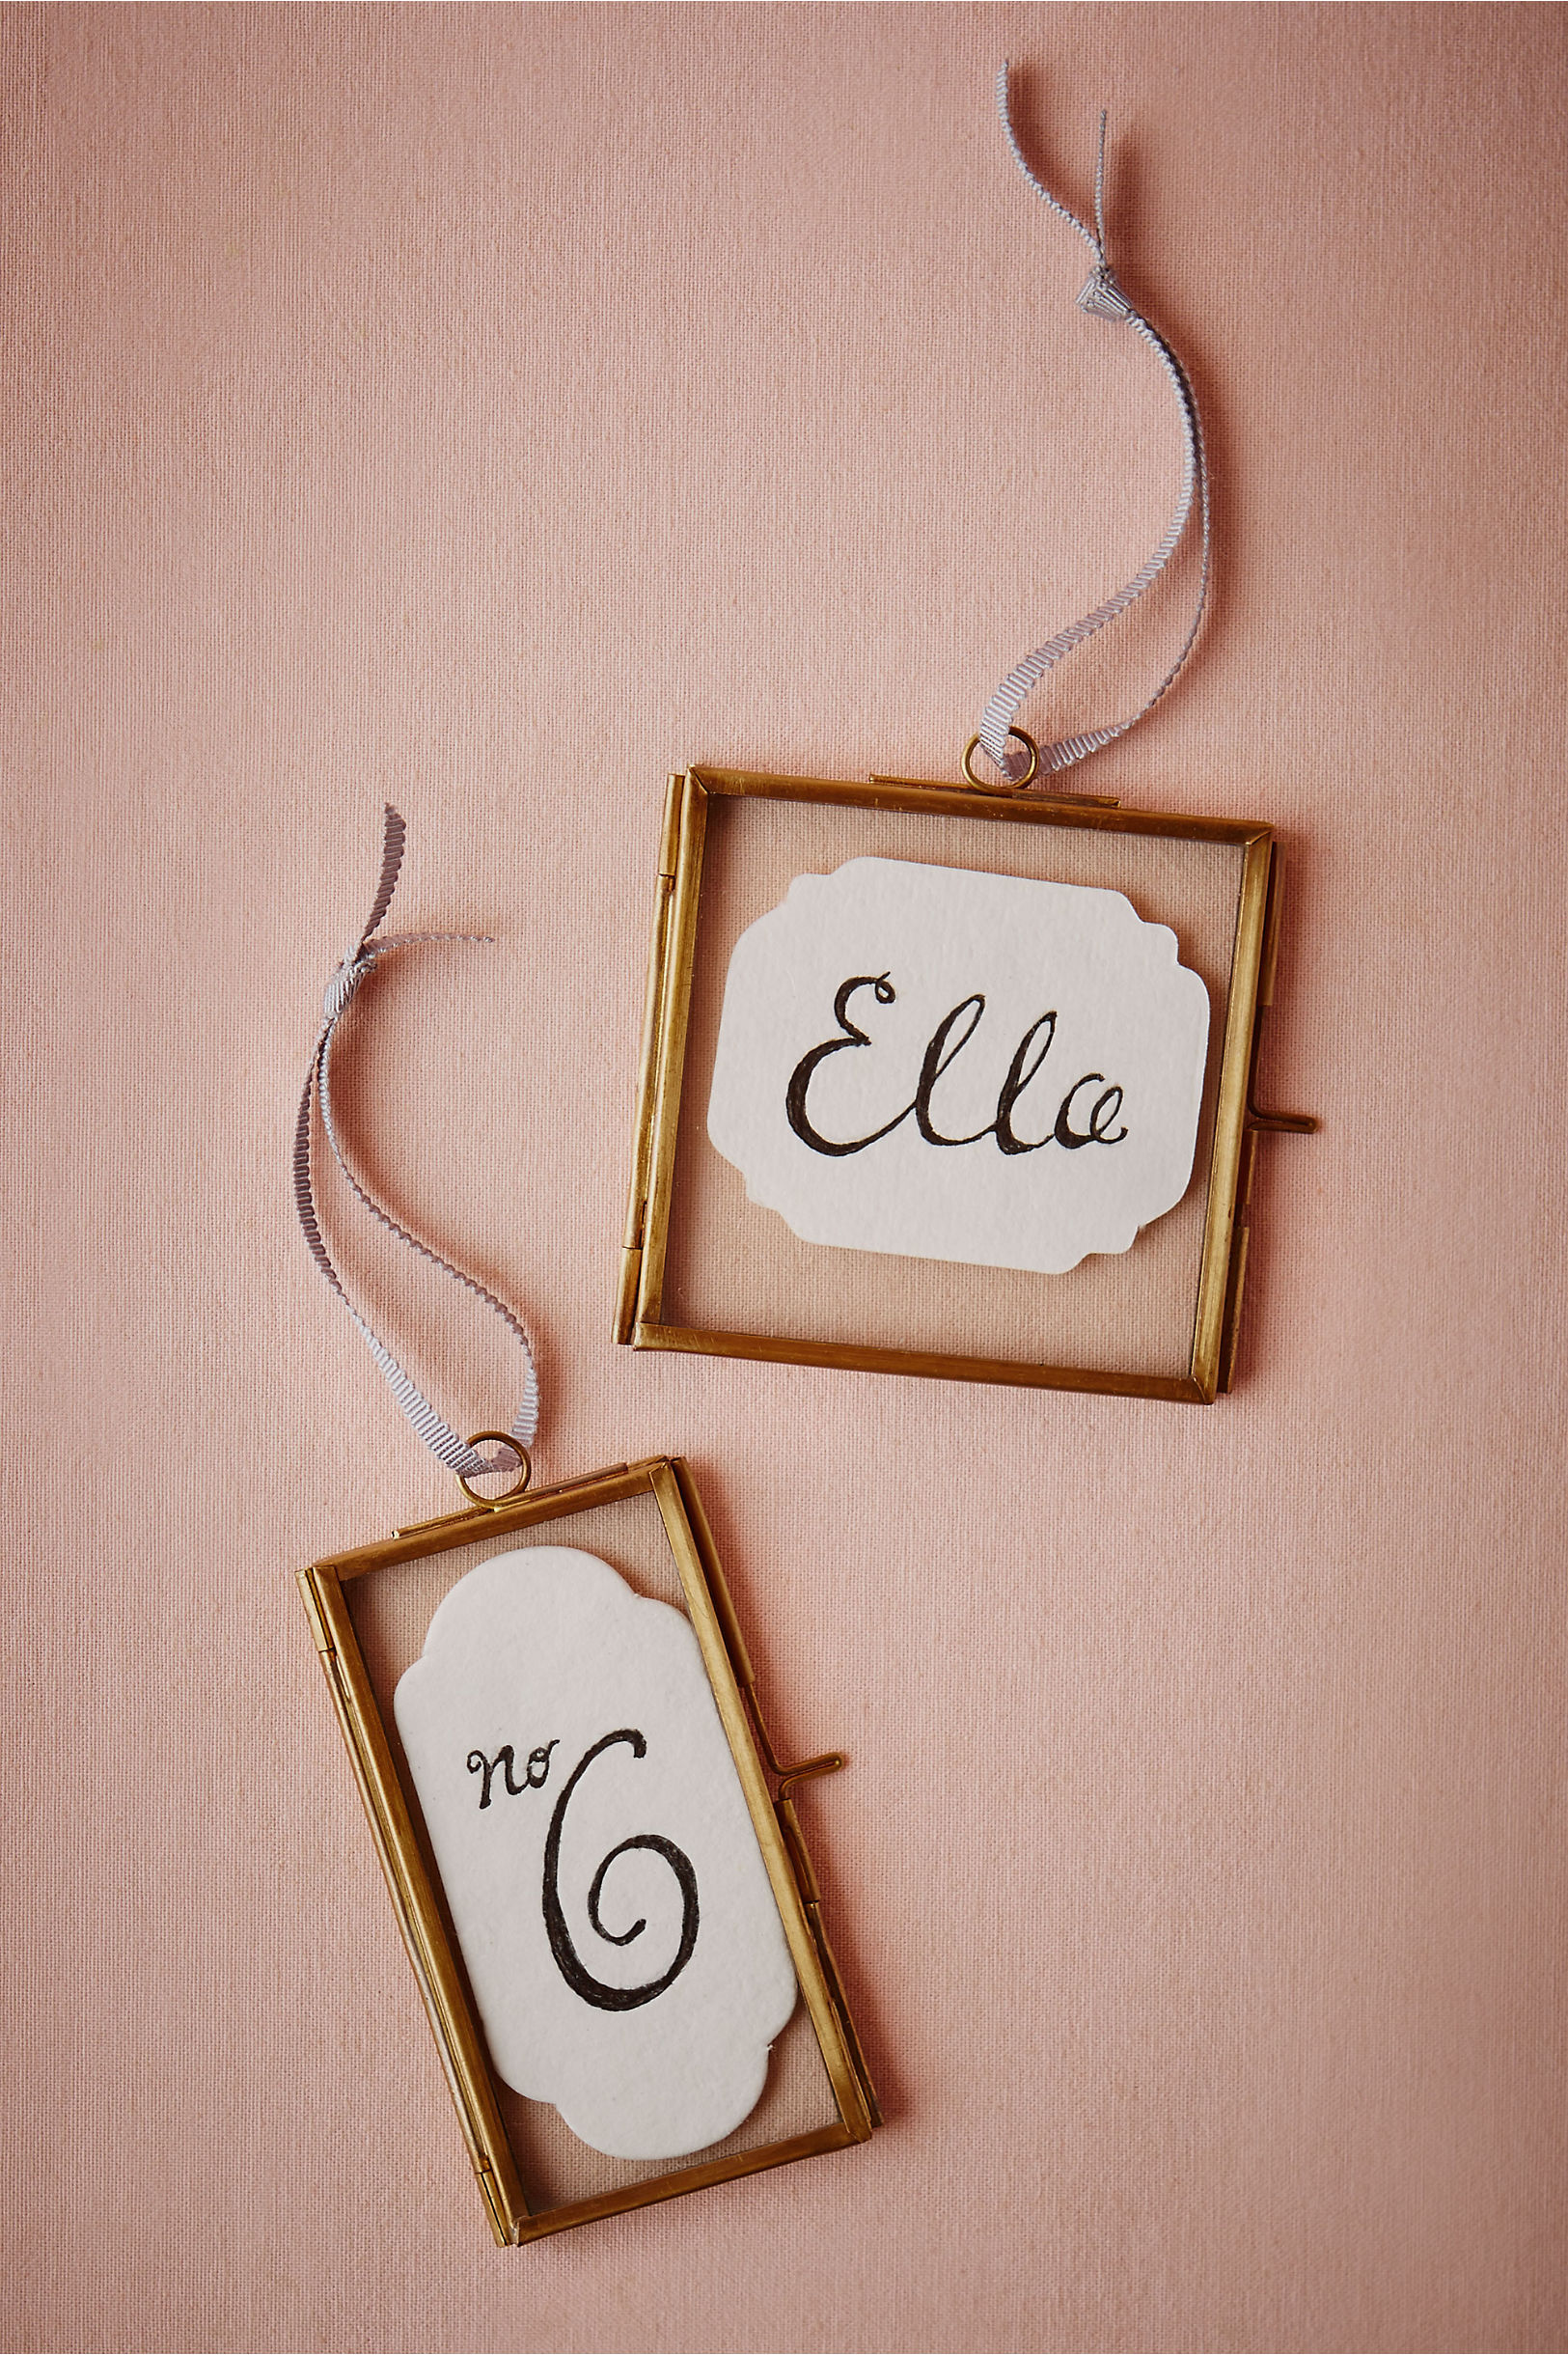 Hanging Glass Frames (4) in Décor & Gifts | BHLDN